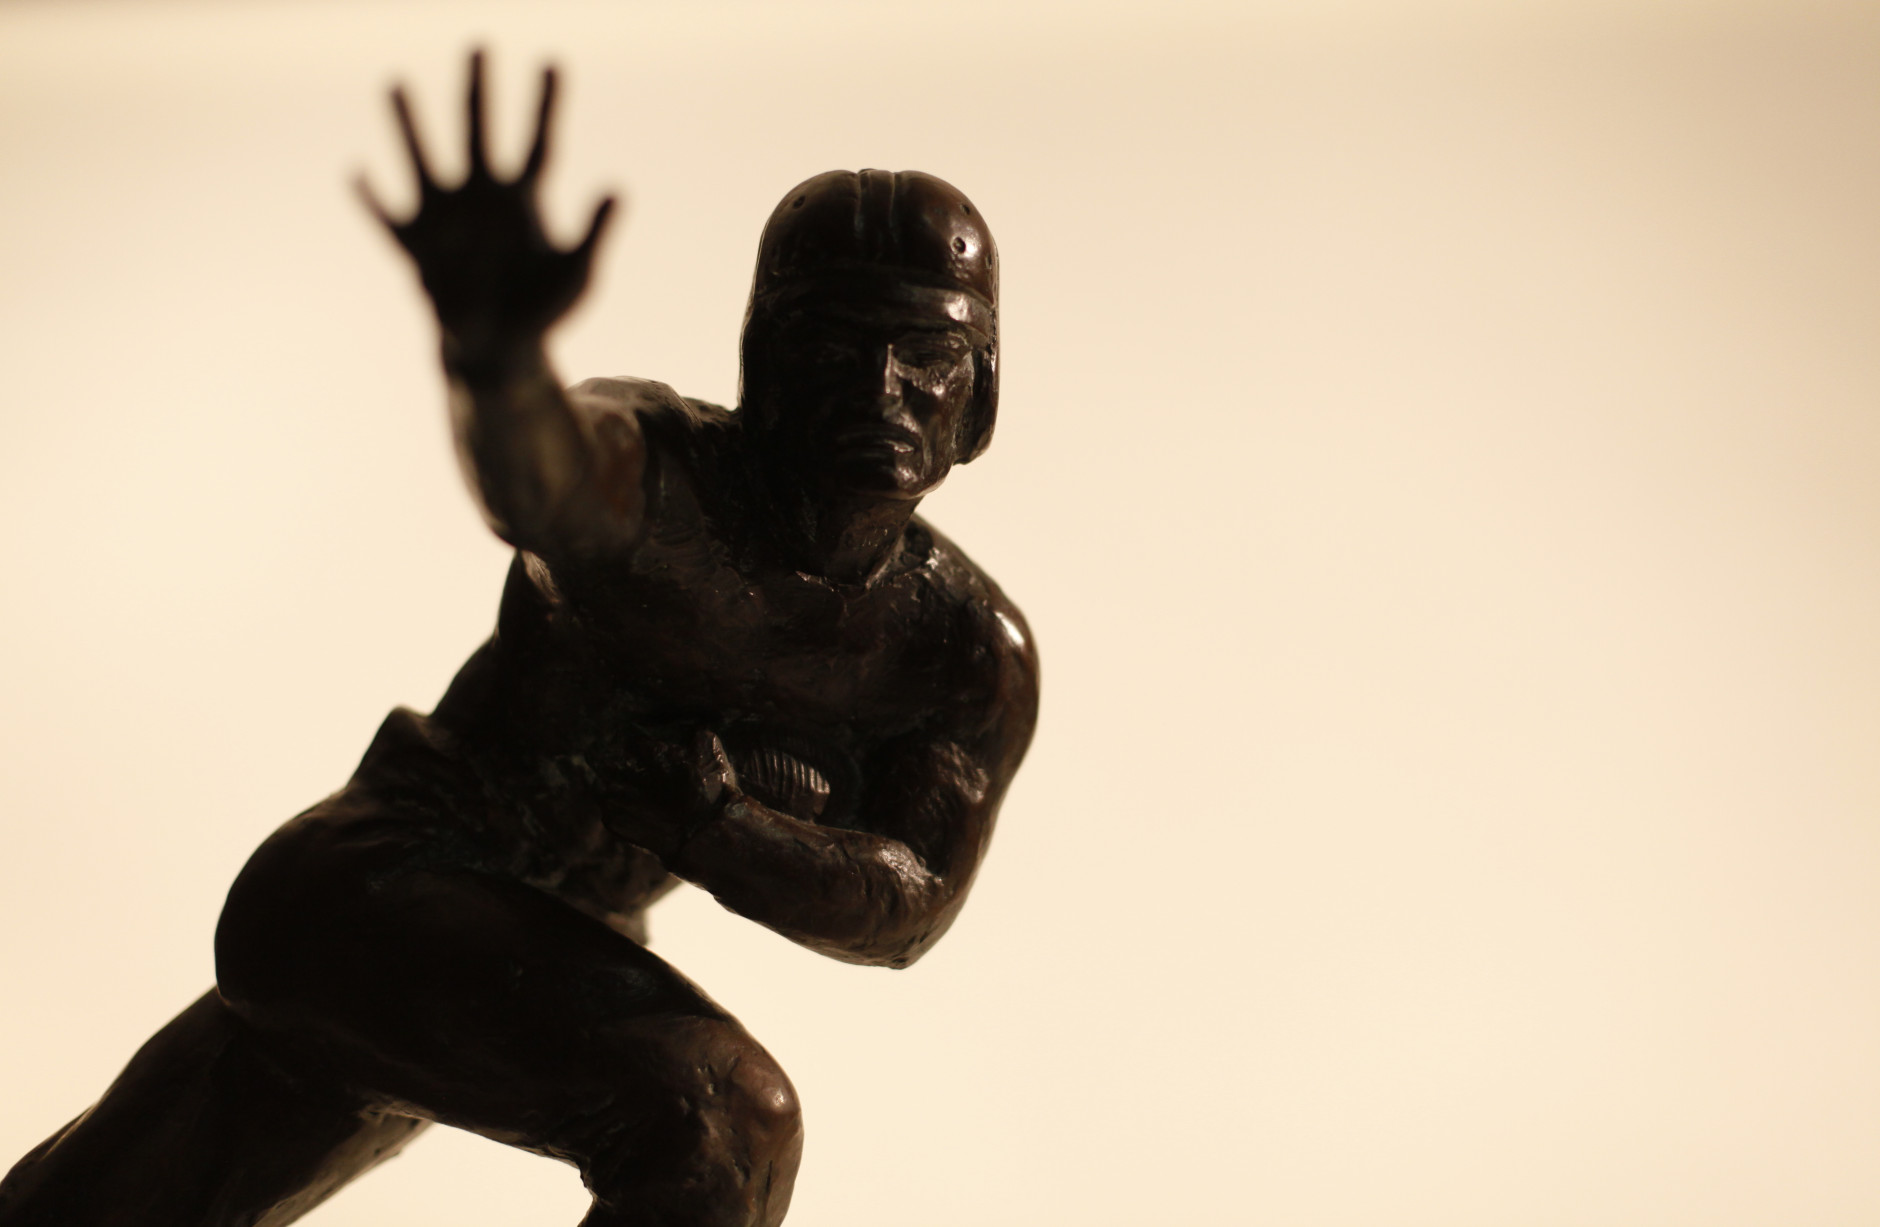 Pictured in this Friday, Nov. 18, 2011 photo in Chicago is the first 1935 Downtown Athletic Club trophy awarded to University of Chicago's Jay Berwanger. Following the death of John Heisman in 1936, who was the Director of Athletics at the Downtown Athletic Club, the award was renamed the Heisman Memorial Trophy. (AP Photo/Charles Rex Arbogast)